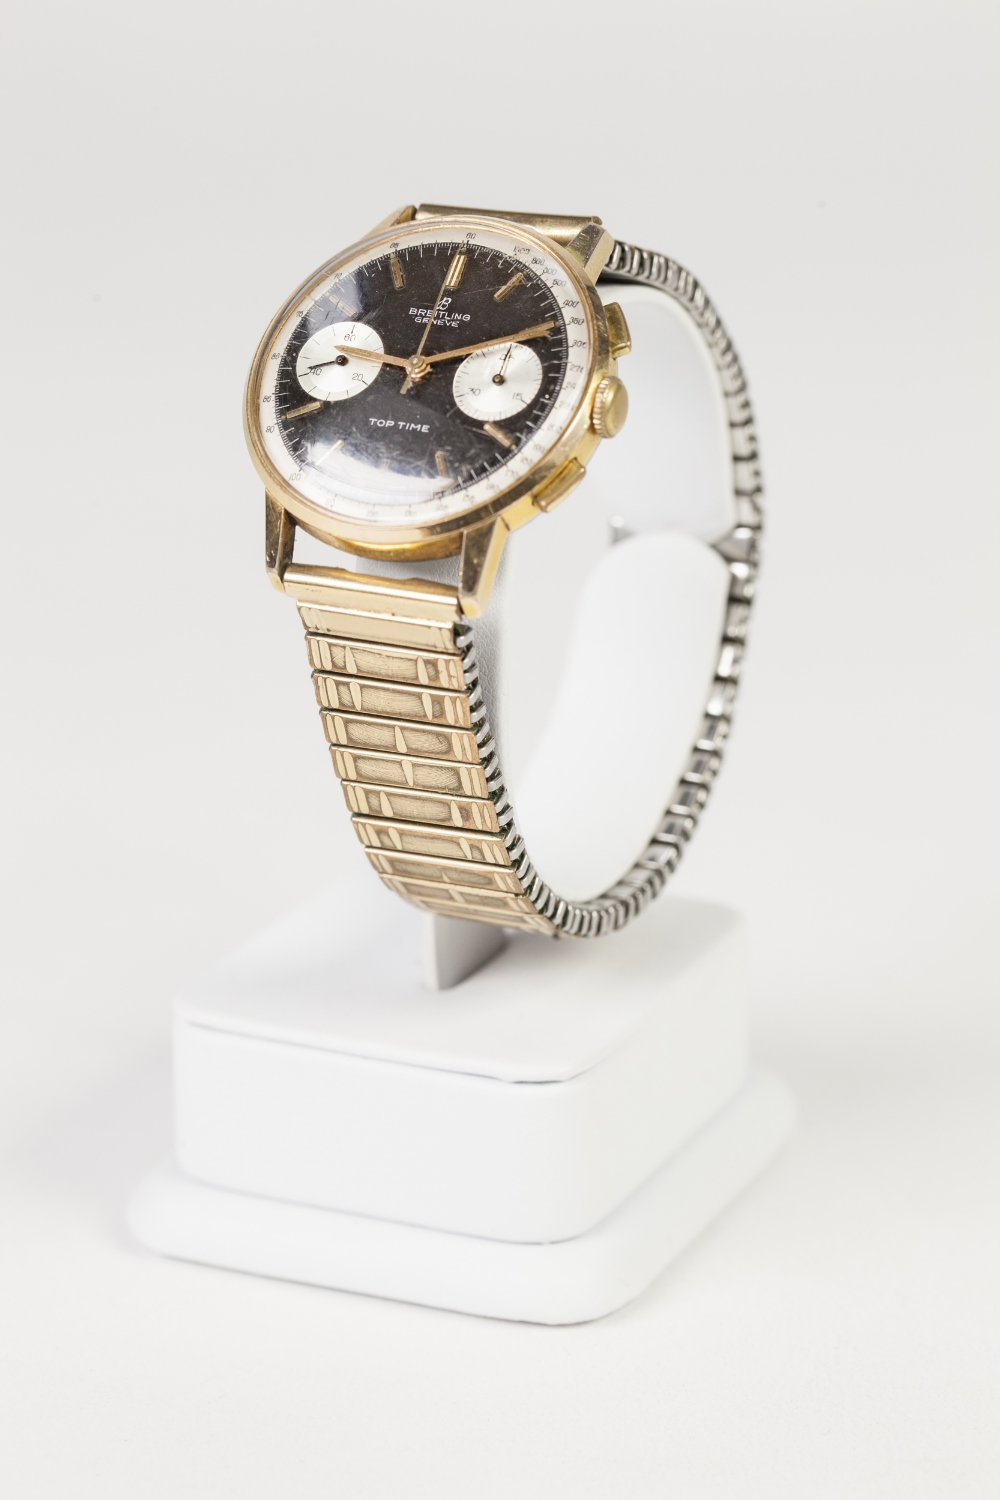 Lot 16 - GENTS BREITLING, GENEVE 'TOP TIME 2000' CHRONOGRAPH WRIST WATCH, manual winding movement, the